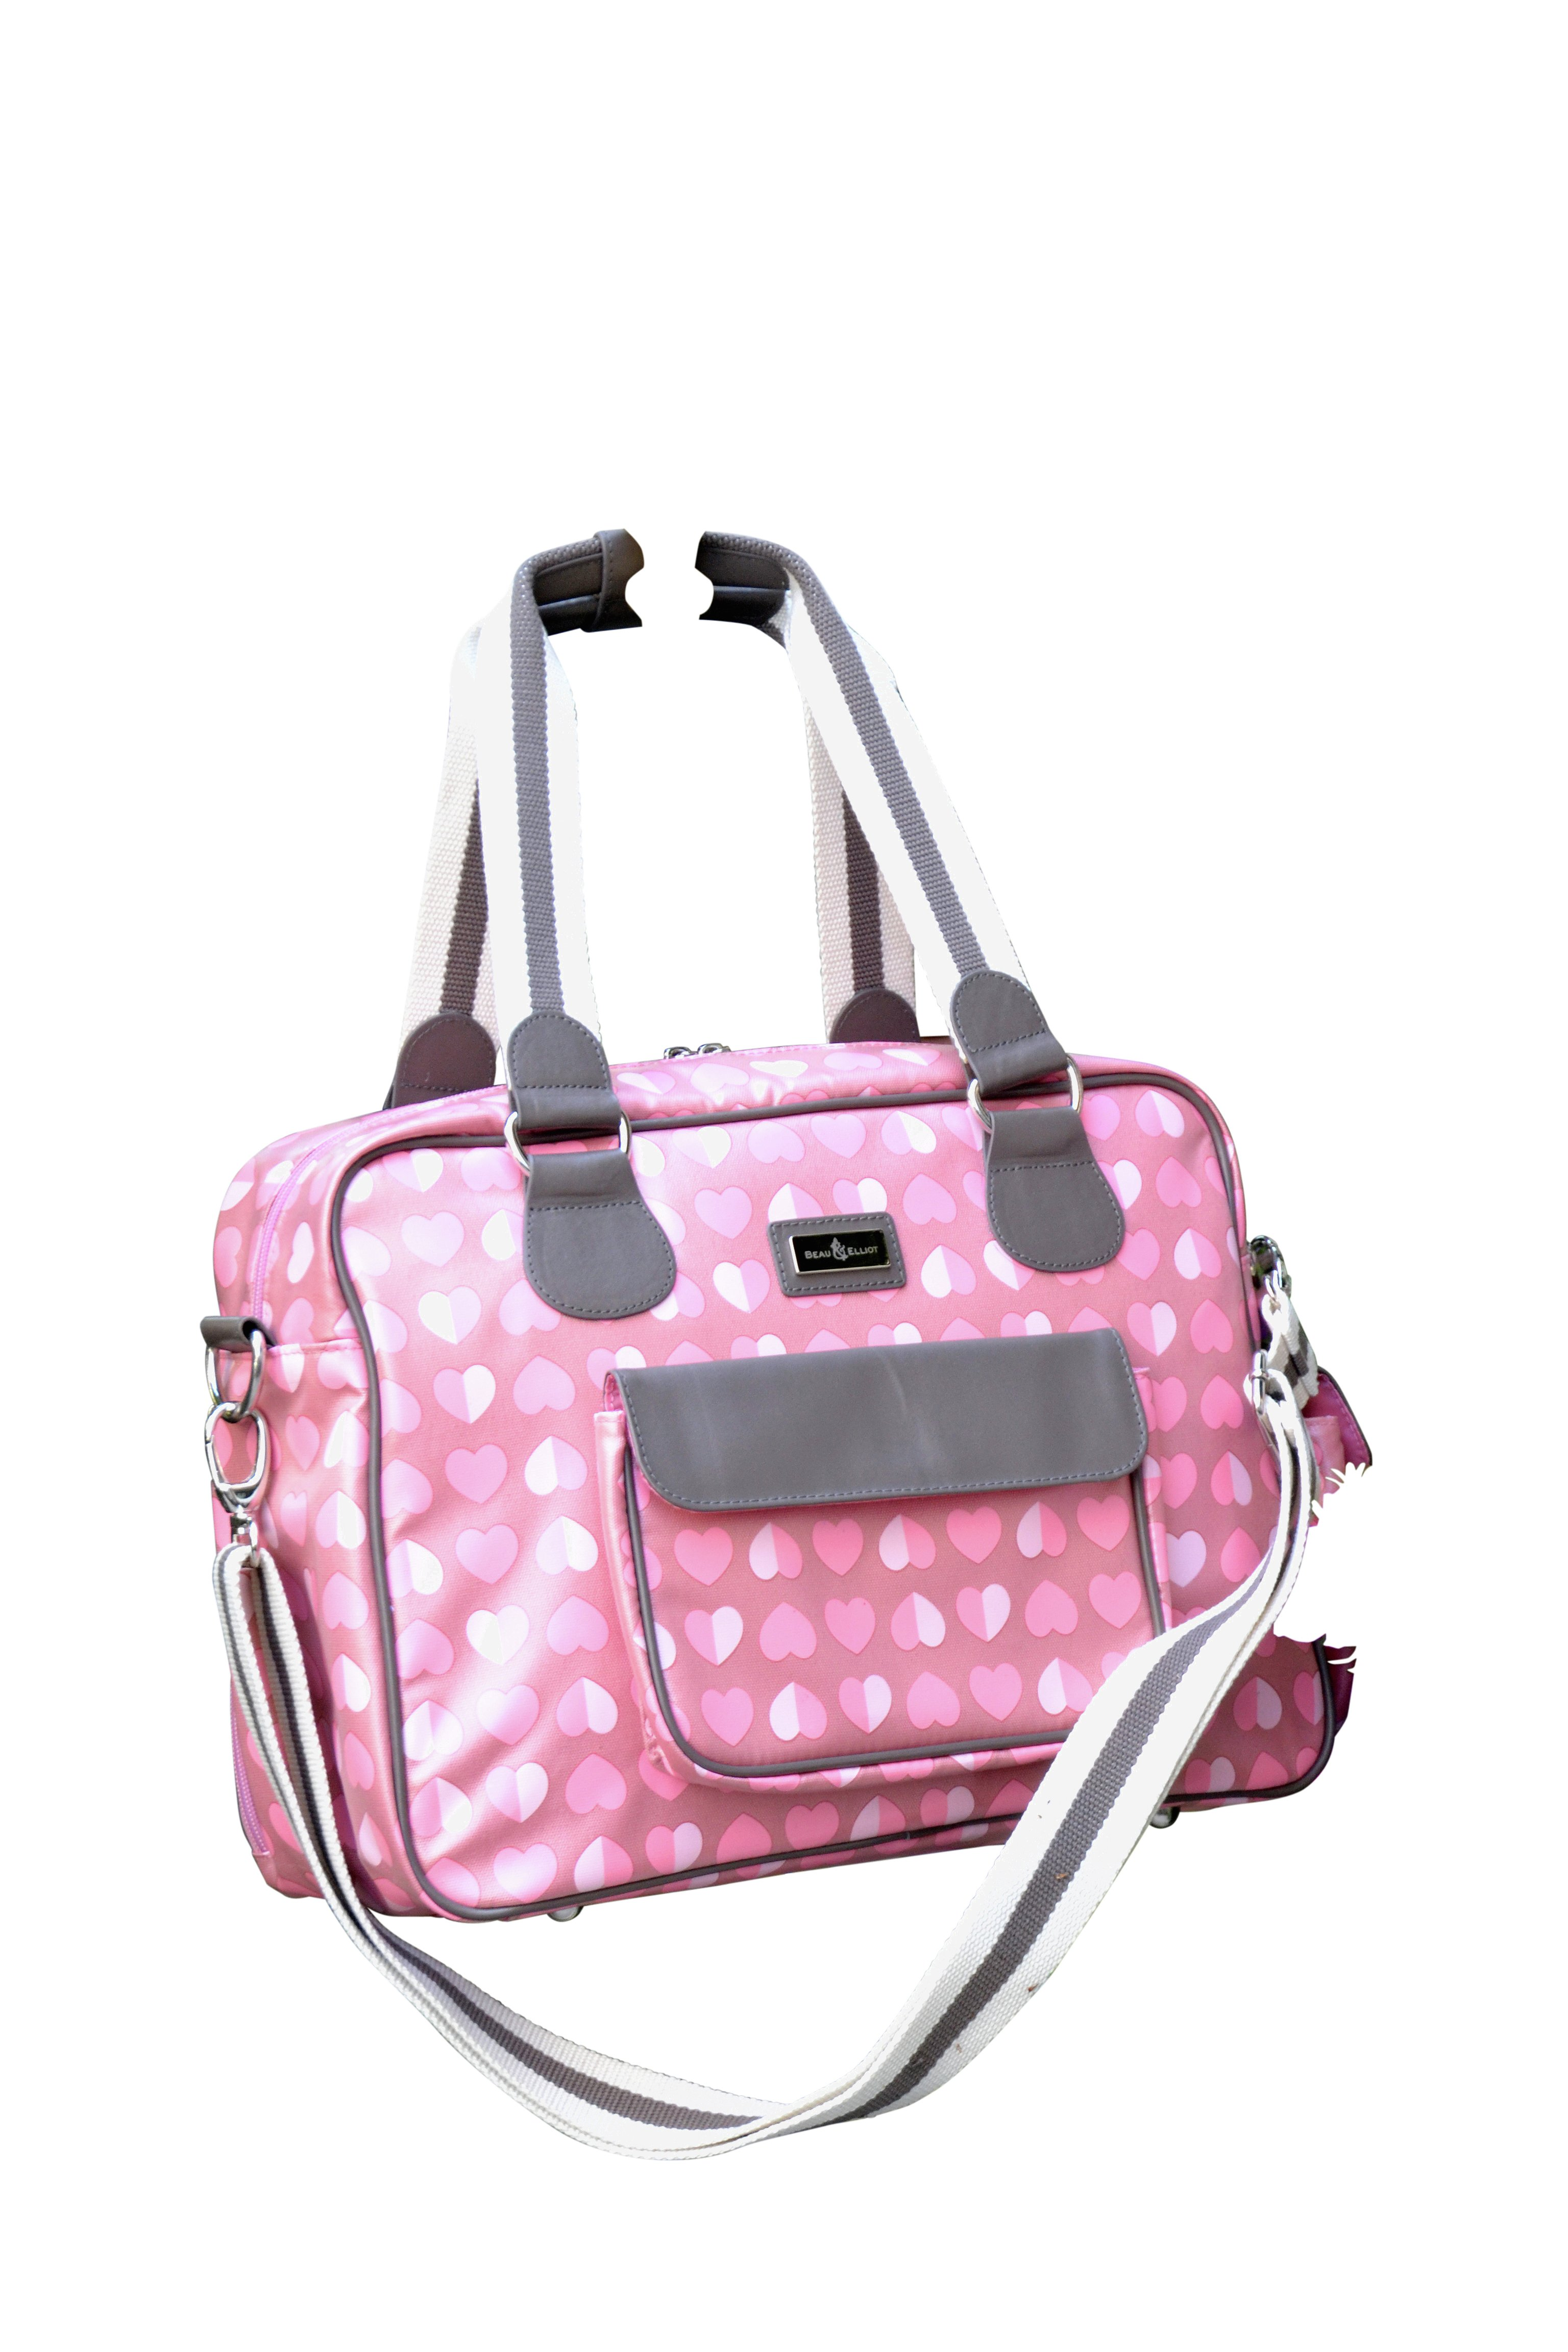 Beau and Elliot Confetti Baby Changing Bag - Pink